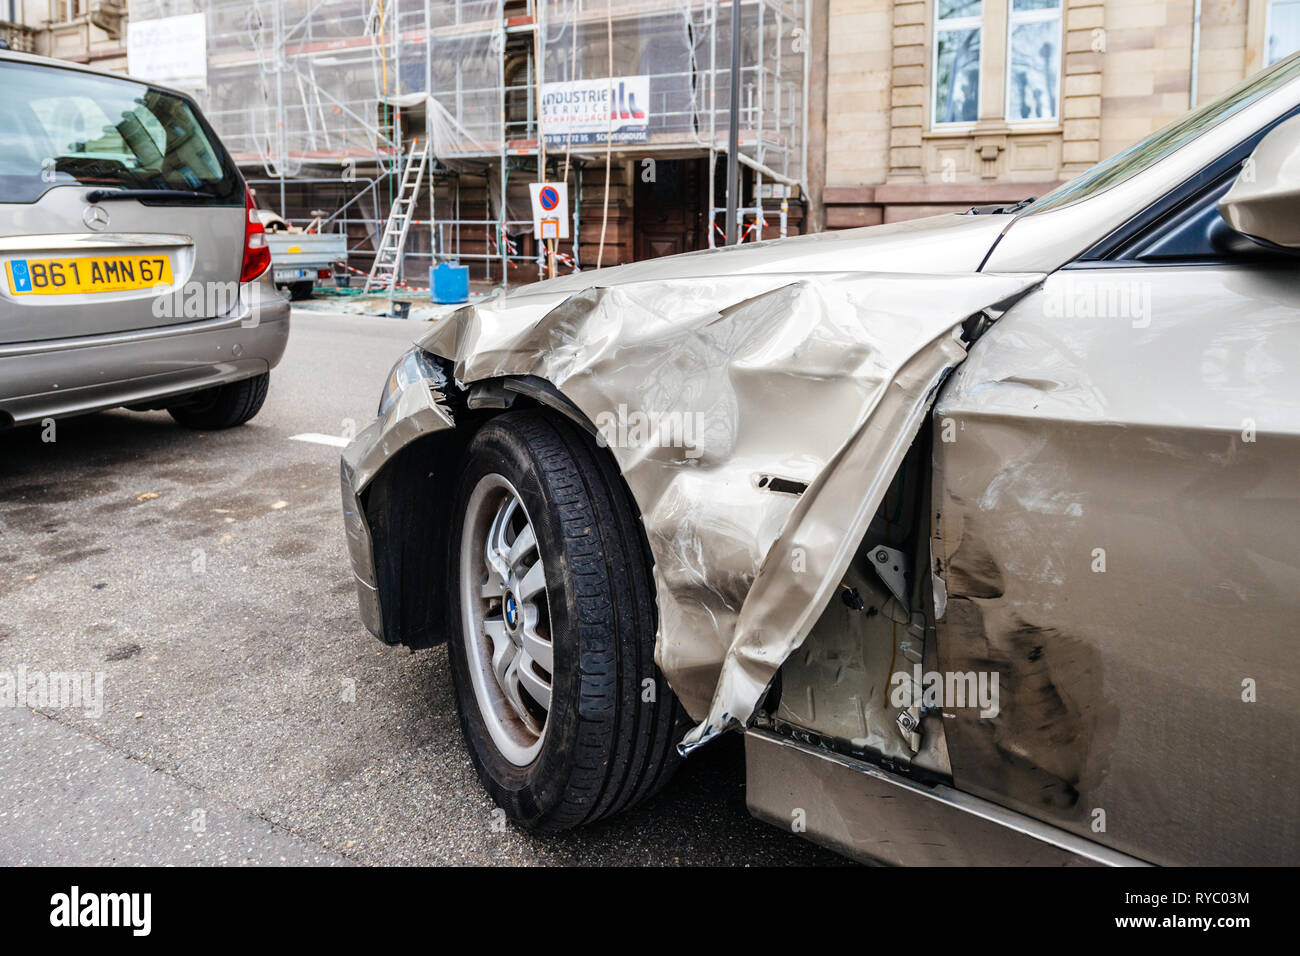 Strasbourg, France - Mar 12, 2019: Side view of luxury BMW german car parked on city street with damaged front by accident on the road - Stock Image